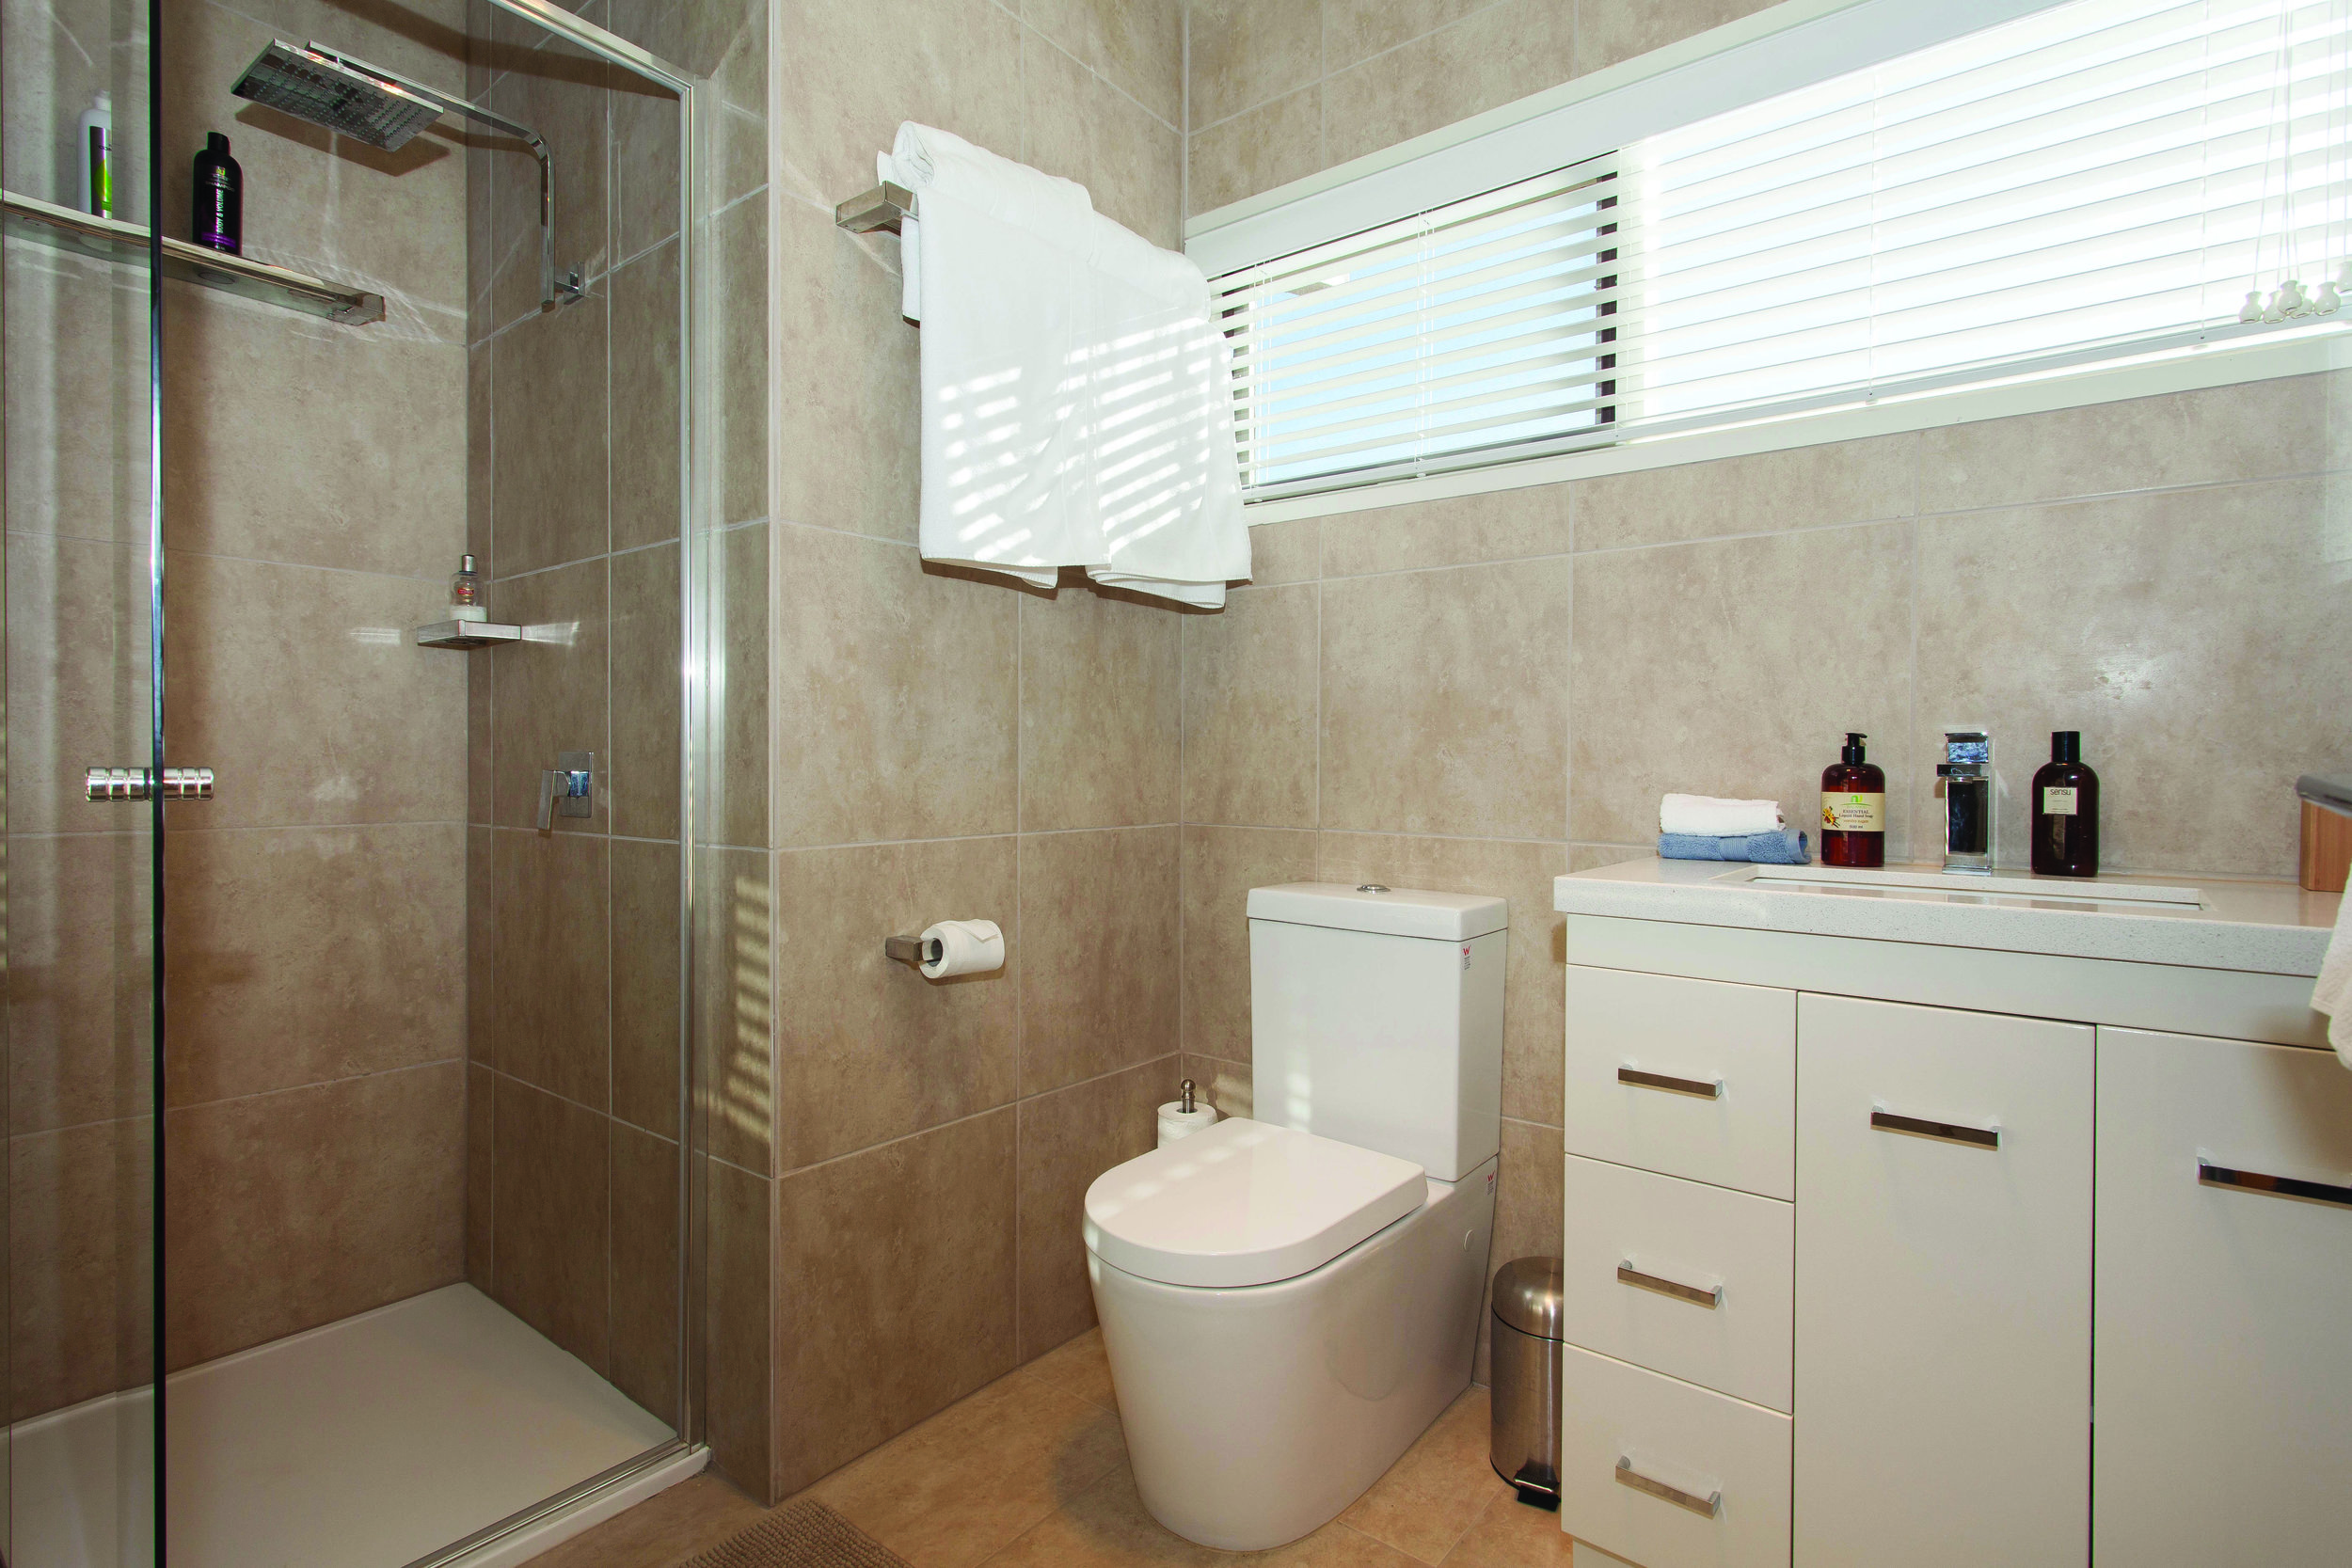 2 bathrooms - Main with large luxurious bath and shower, ensuite with overhead rain shower